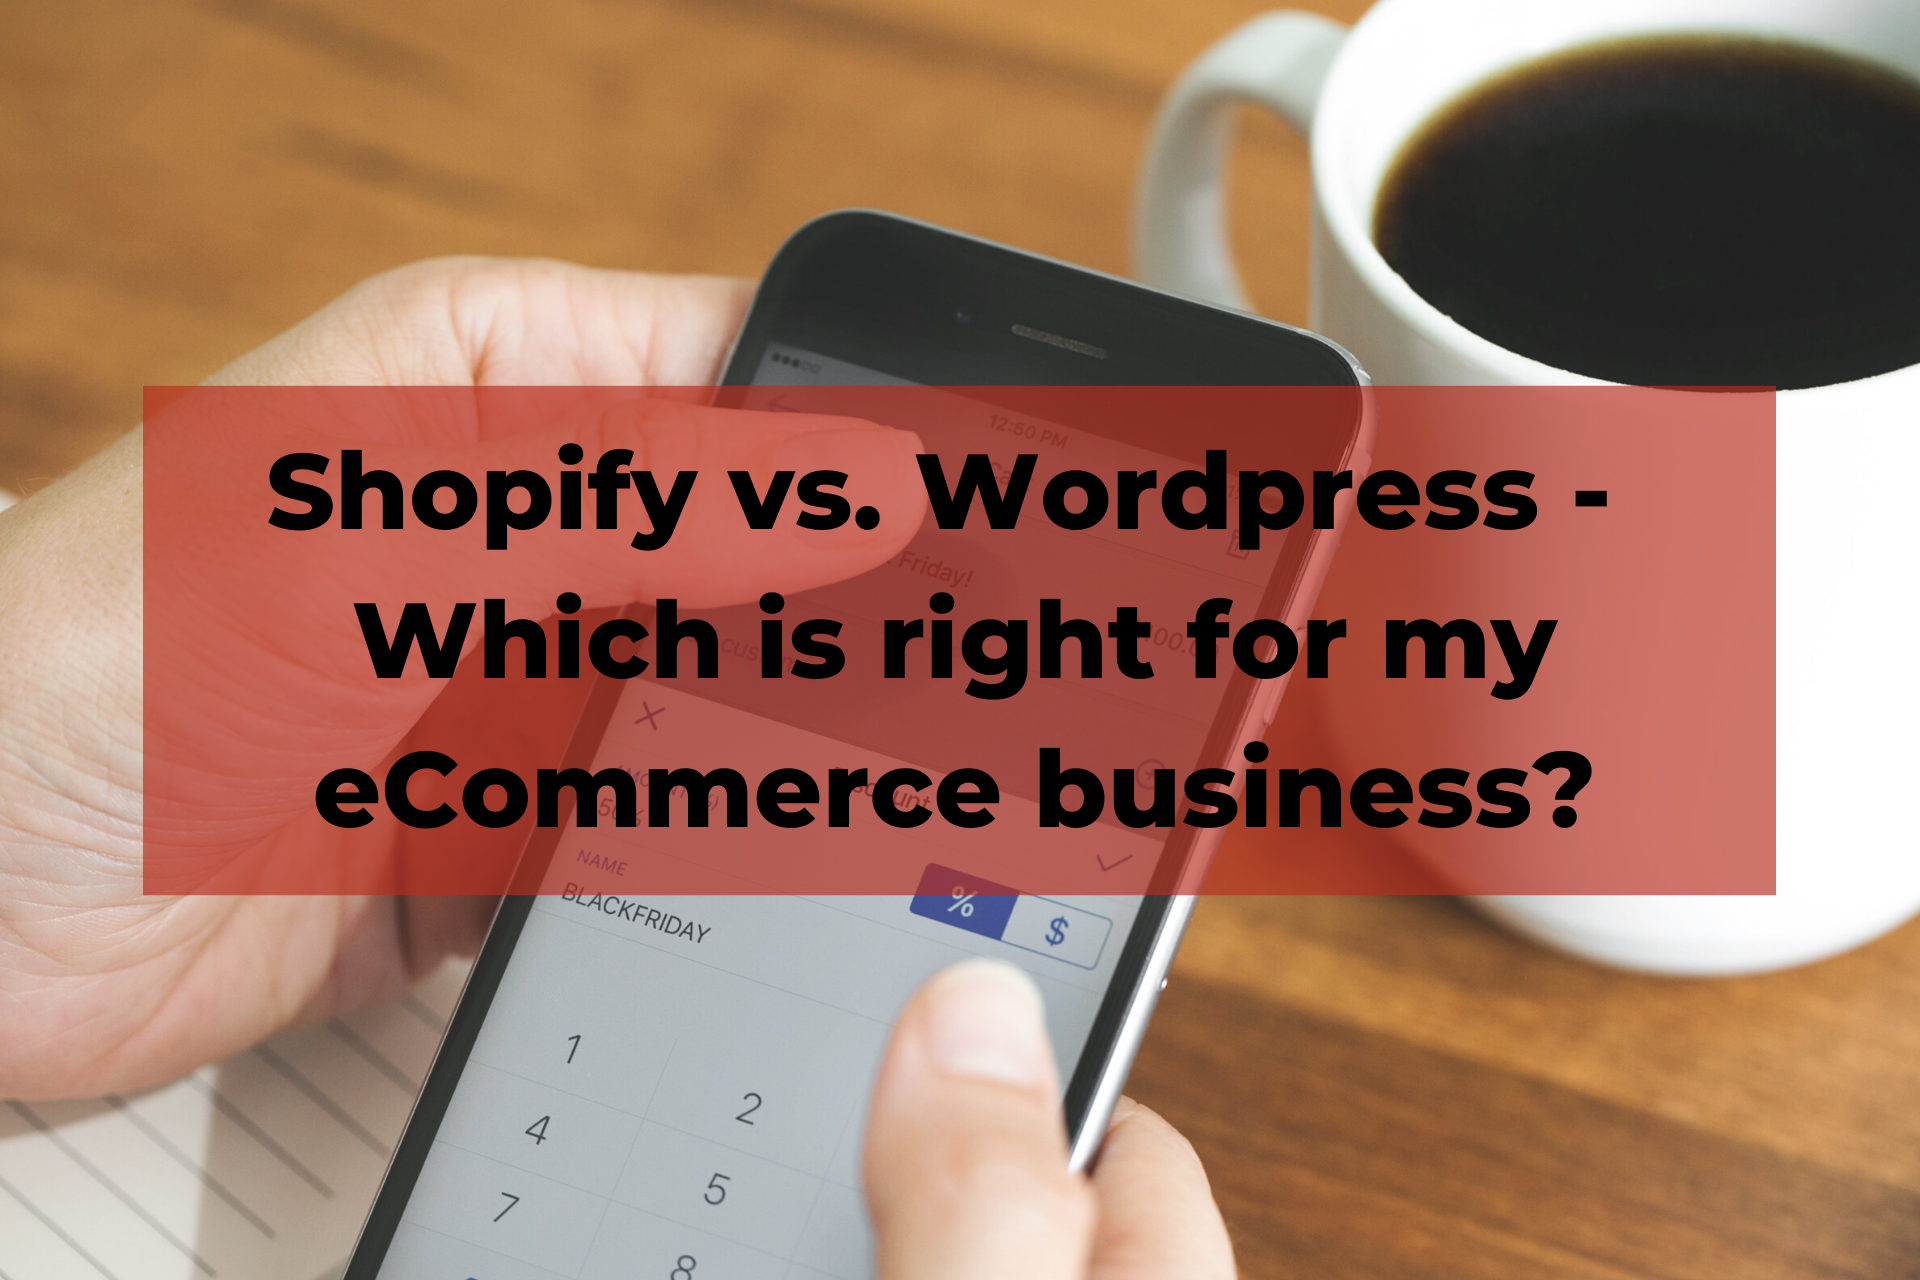 Shopify vs. Wordpress - Which is right for my eCommerce business?